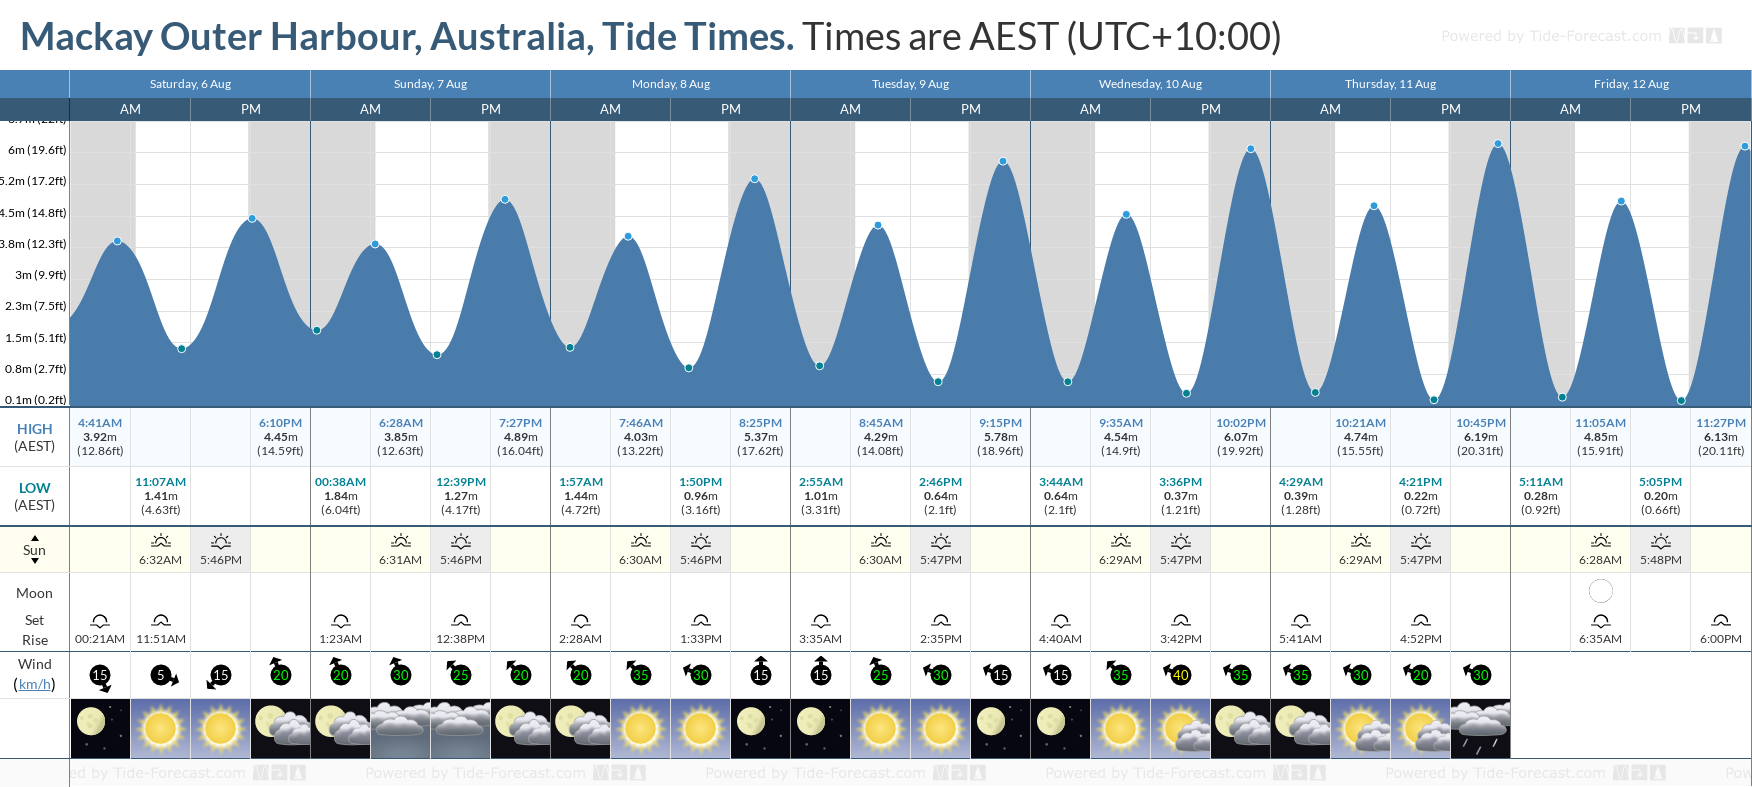 Mackay Outer Harbour, Australia Tide Chart including high and low tide tide times for the next 7 days